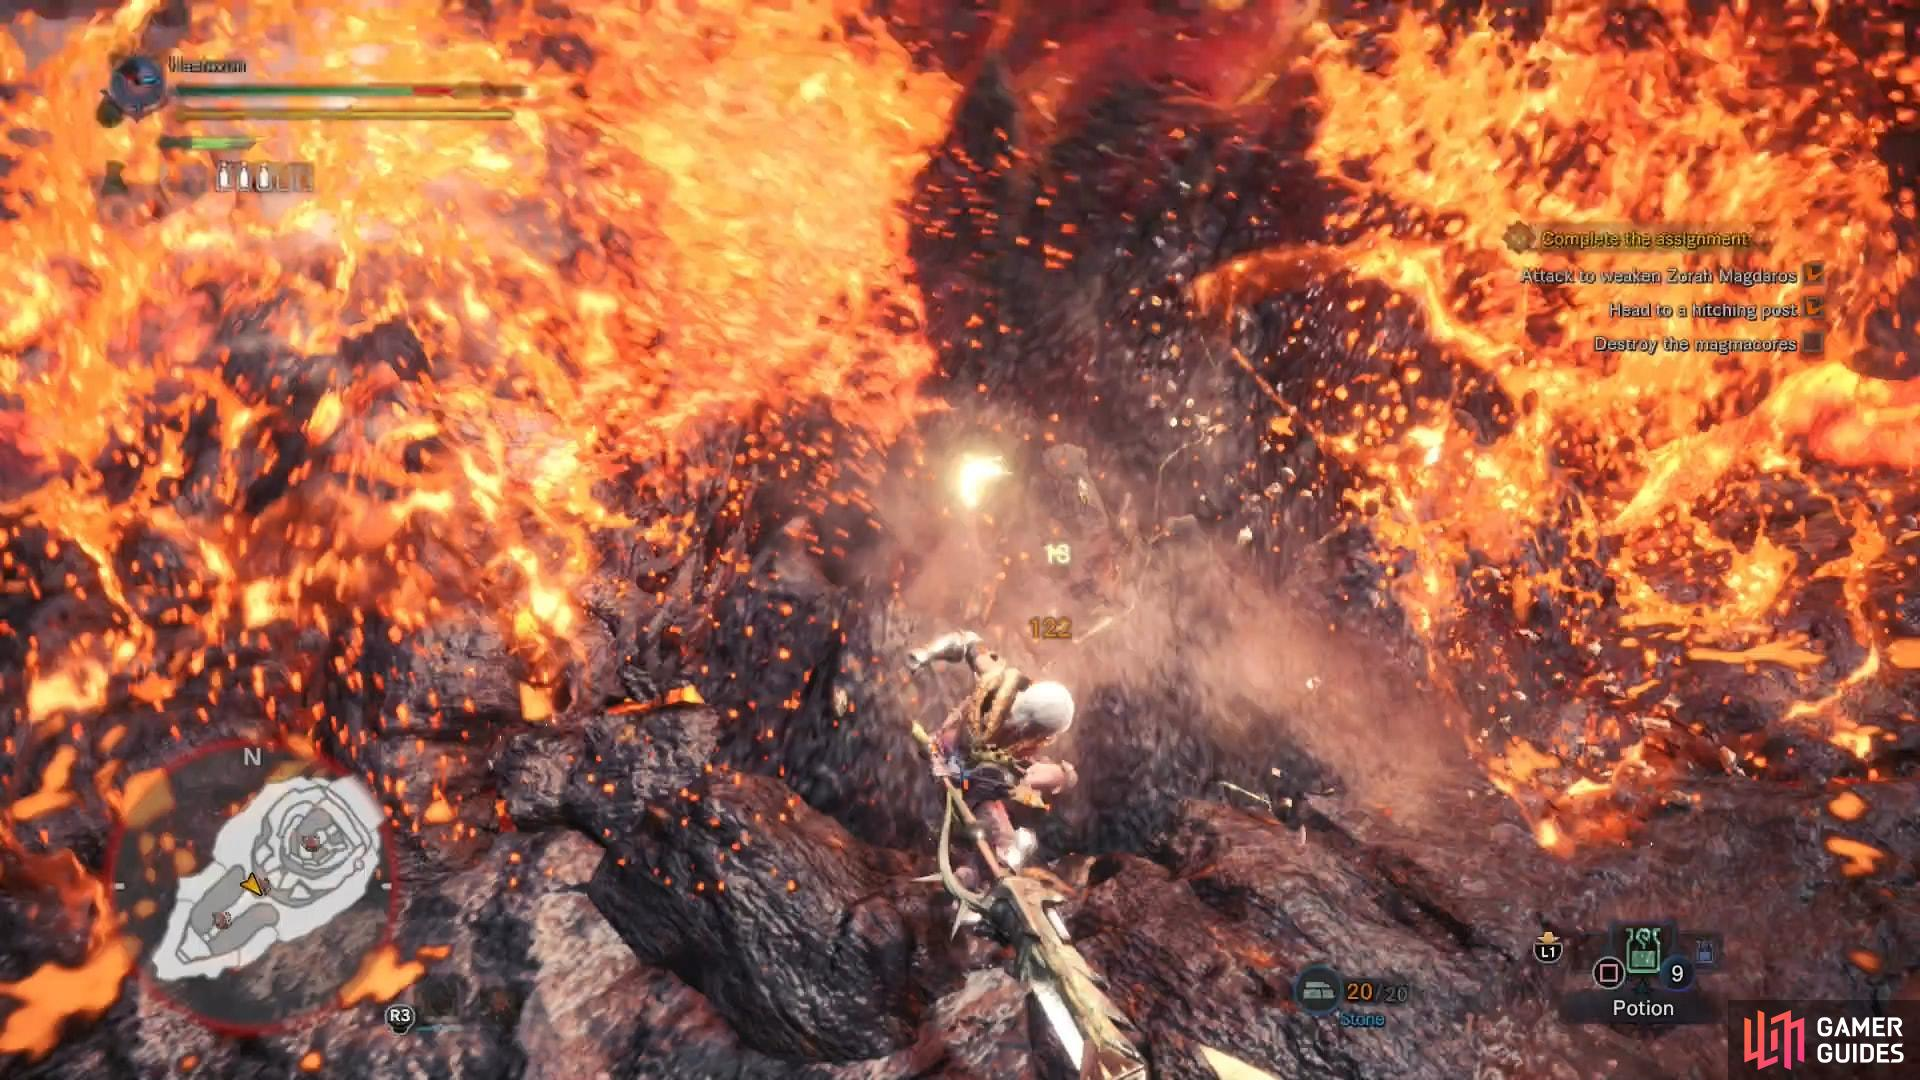 Find and destroy any Magmacores on Zorah Magdaros you find, but be wary of their fiery discharge